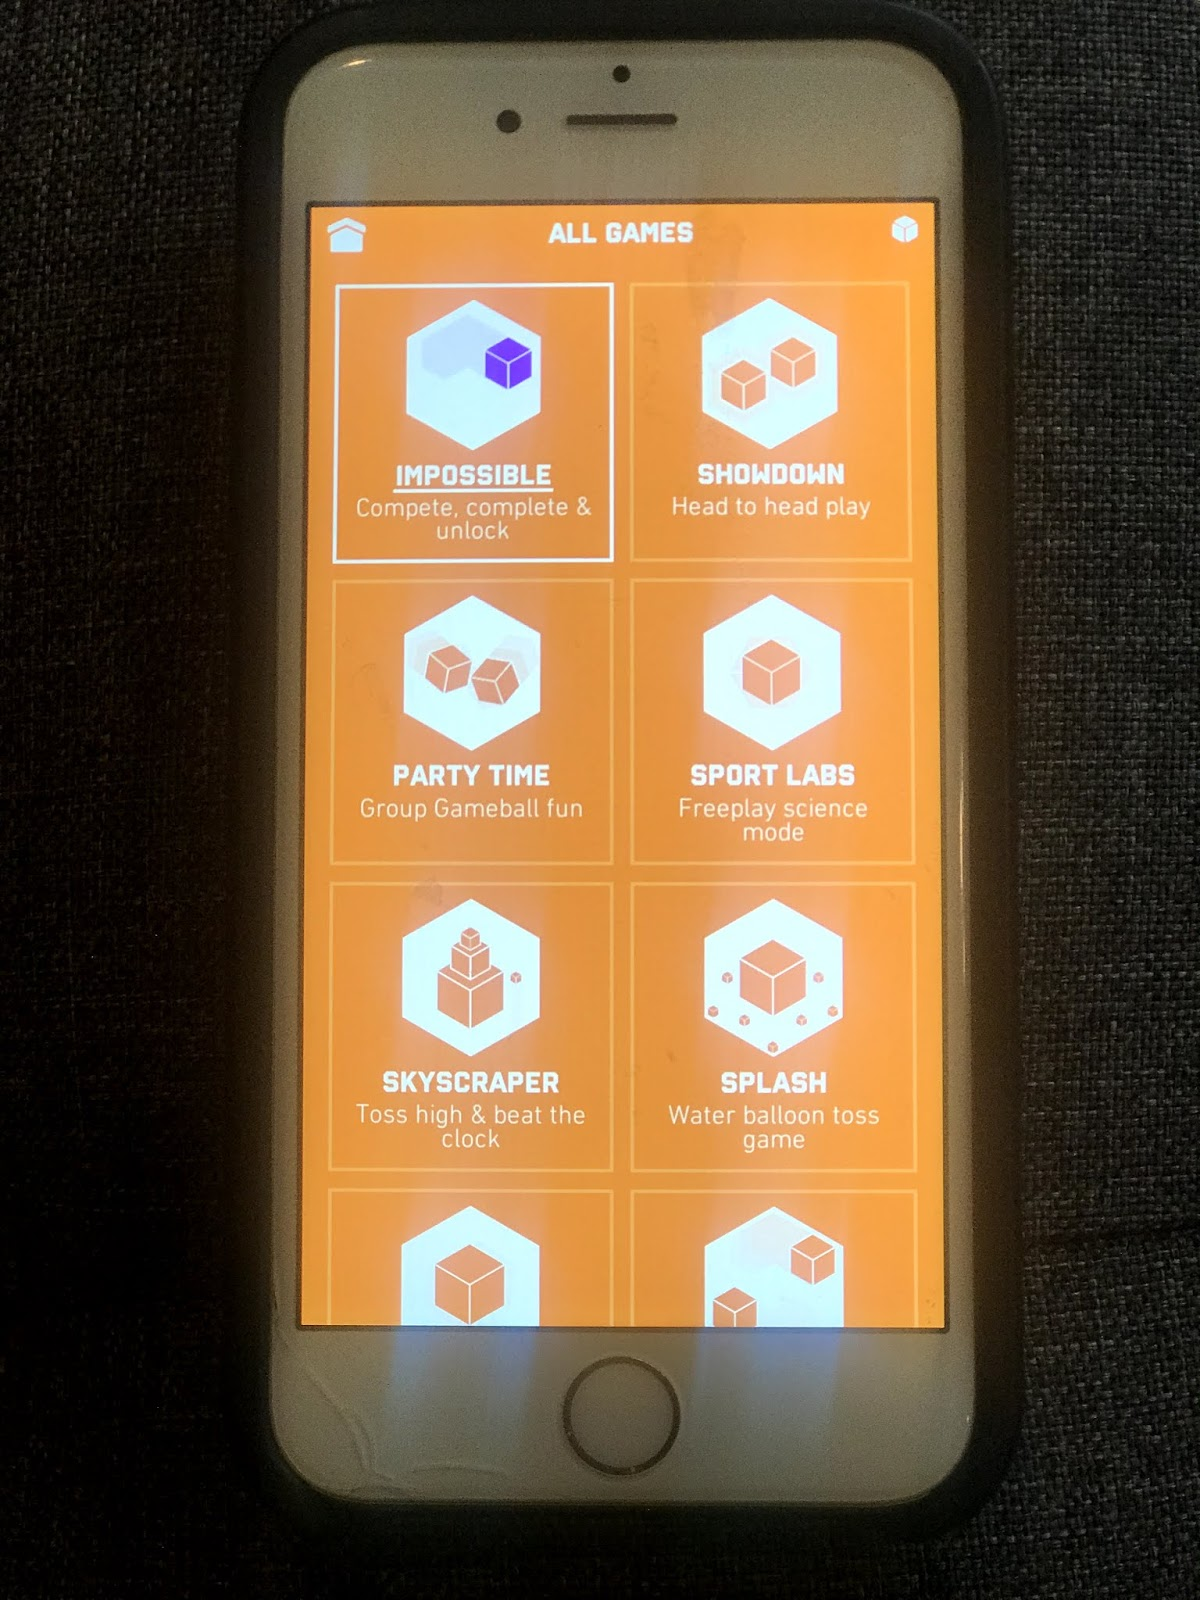 A photo of the Game possible screen app that shows the list of all the games.